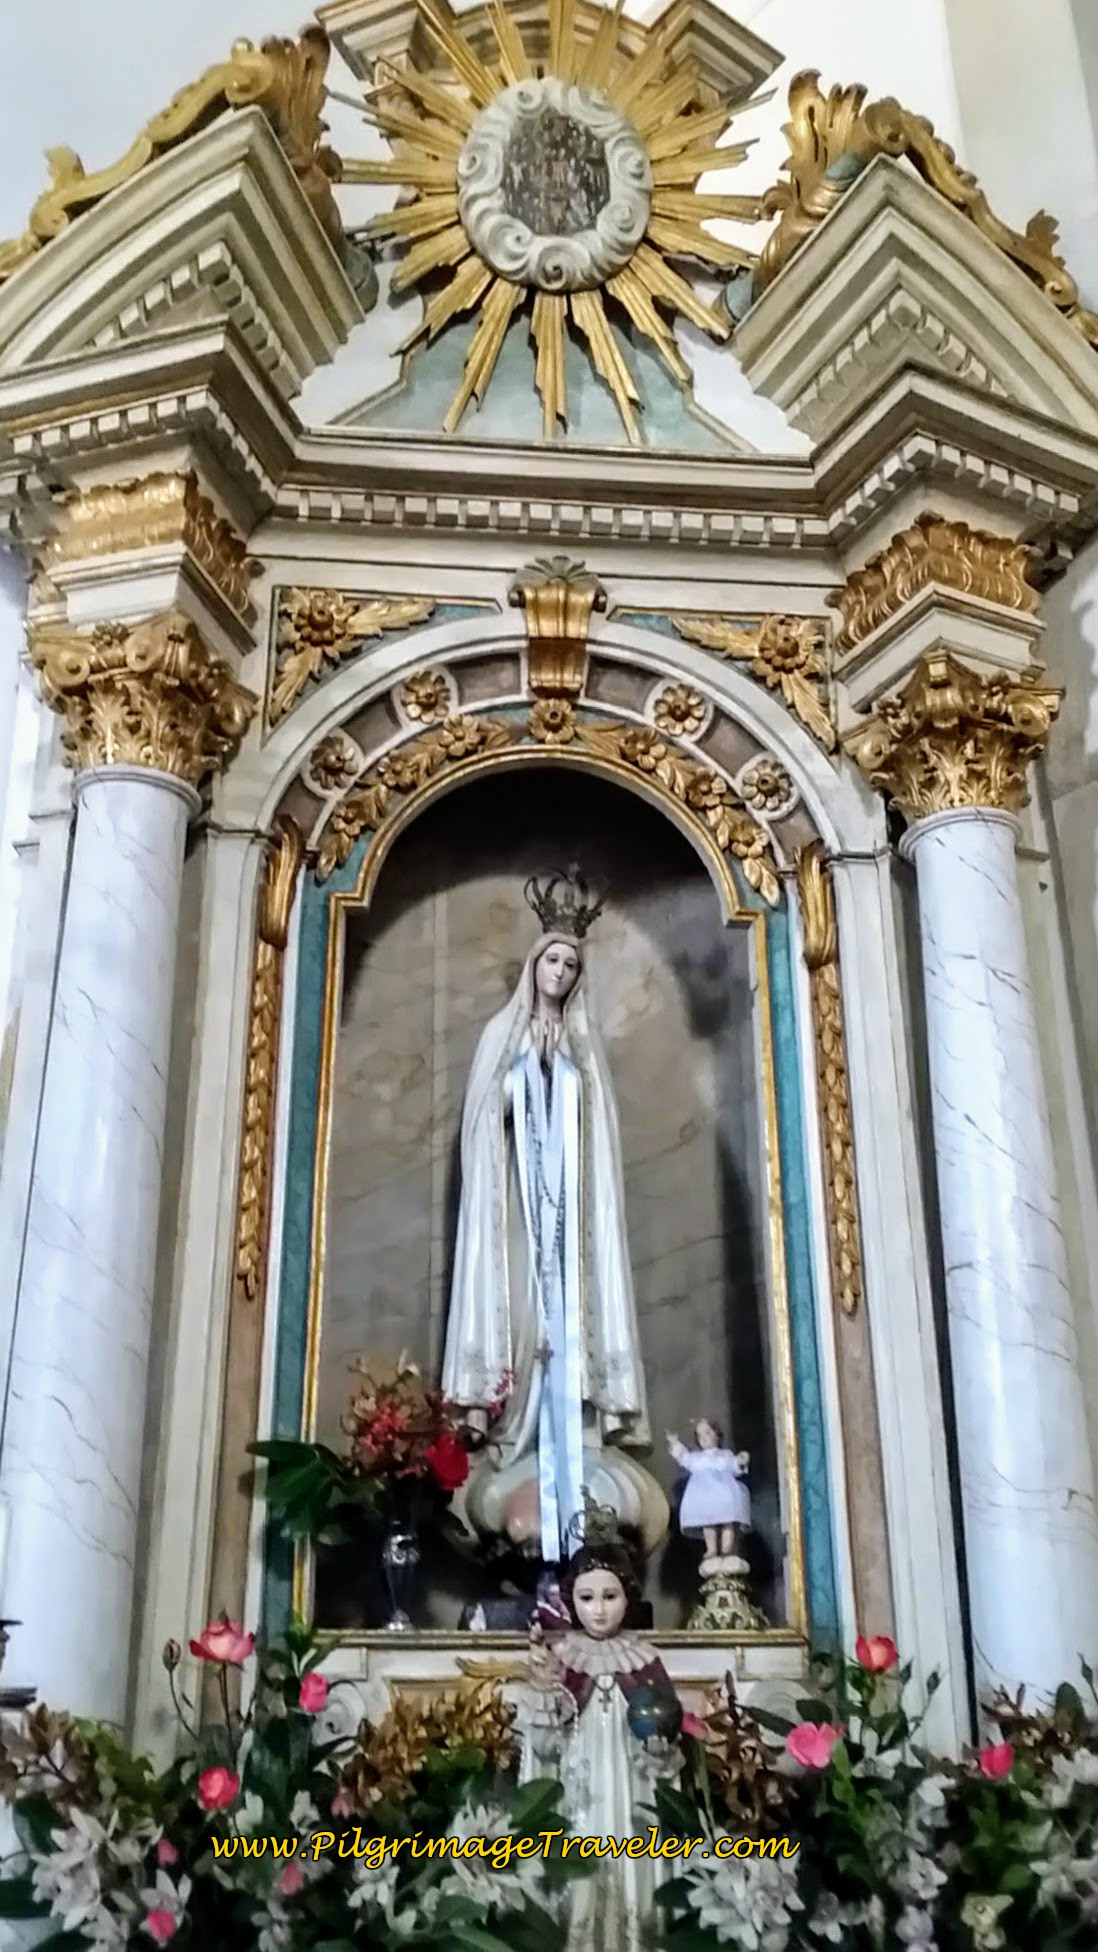 Altar to Fátima in Church